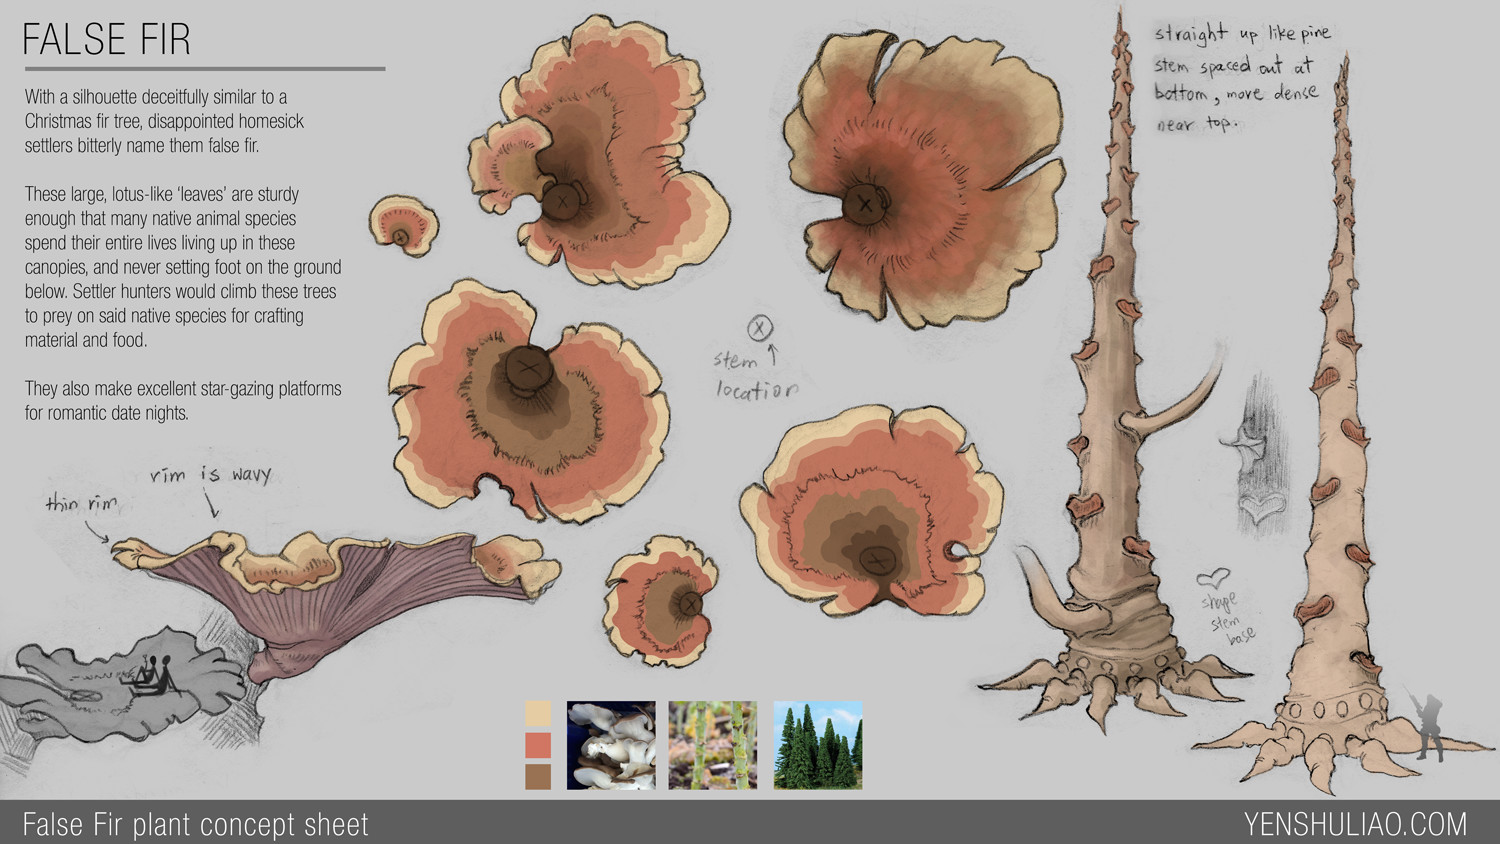 Yen shu liao environment concept art yen shu liao mushroom forest prop 02 layout